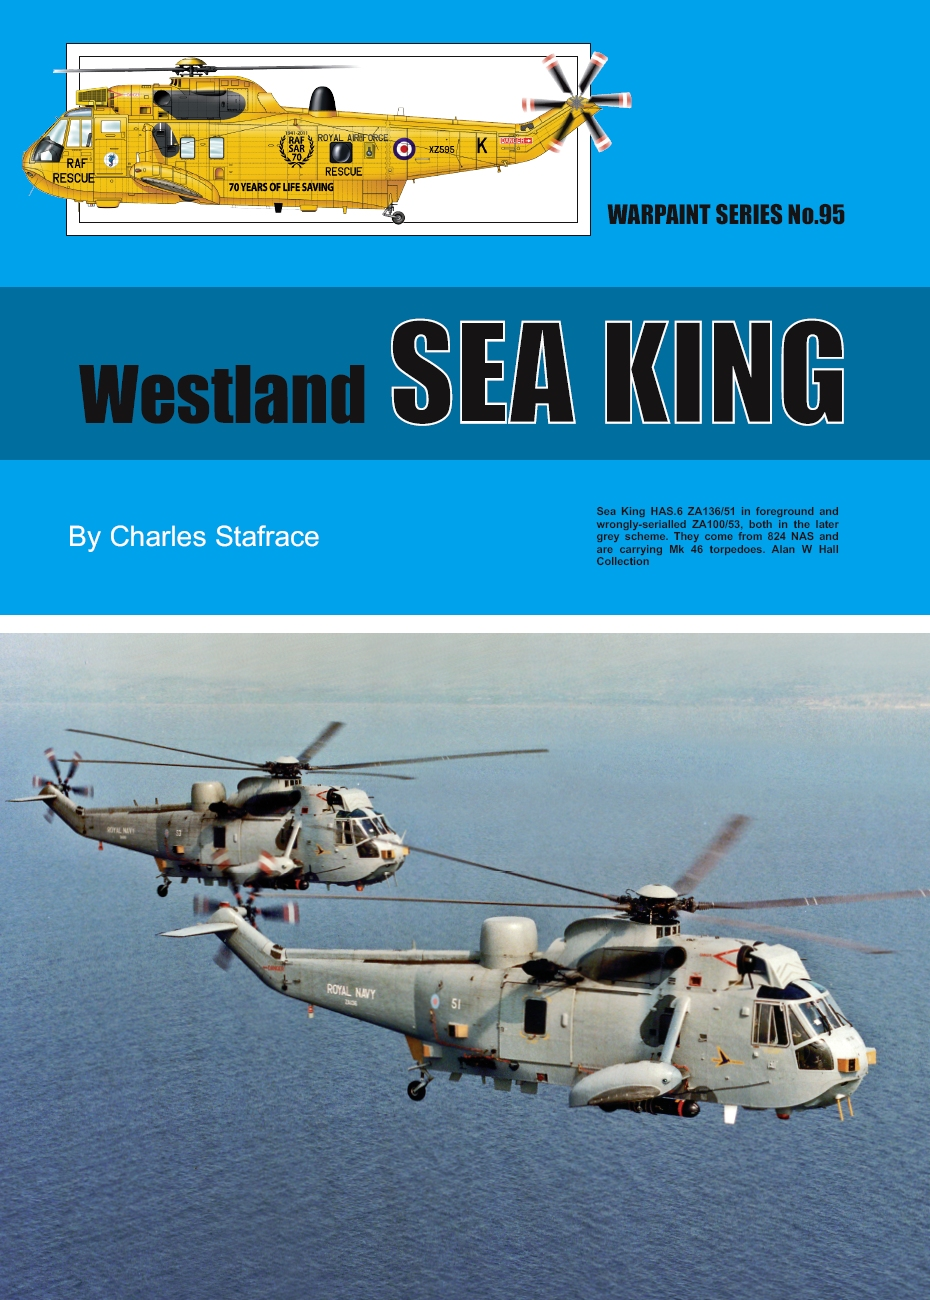 Guideline Publications No 95 Sea King No. 95 in the Warpaint series